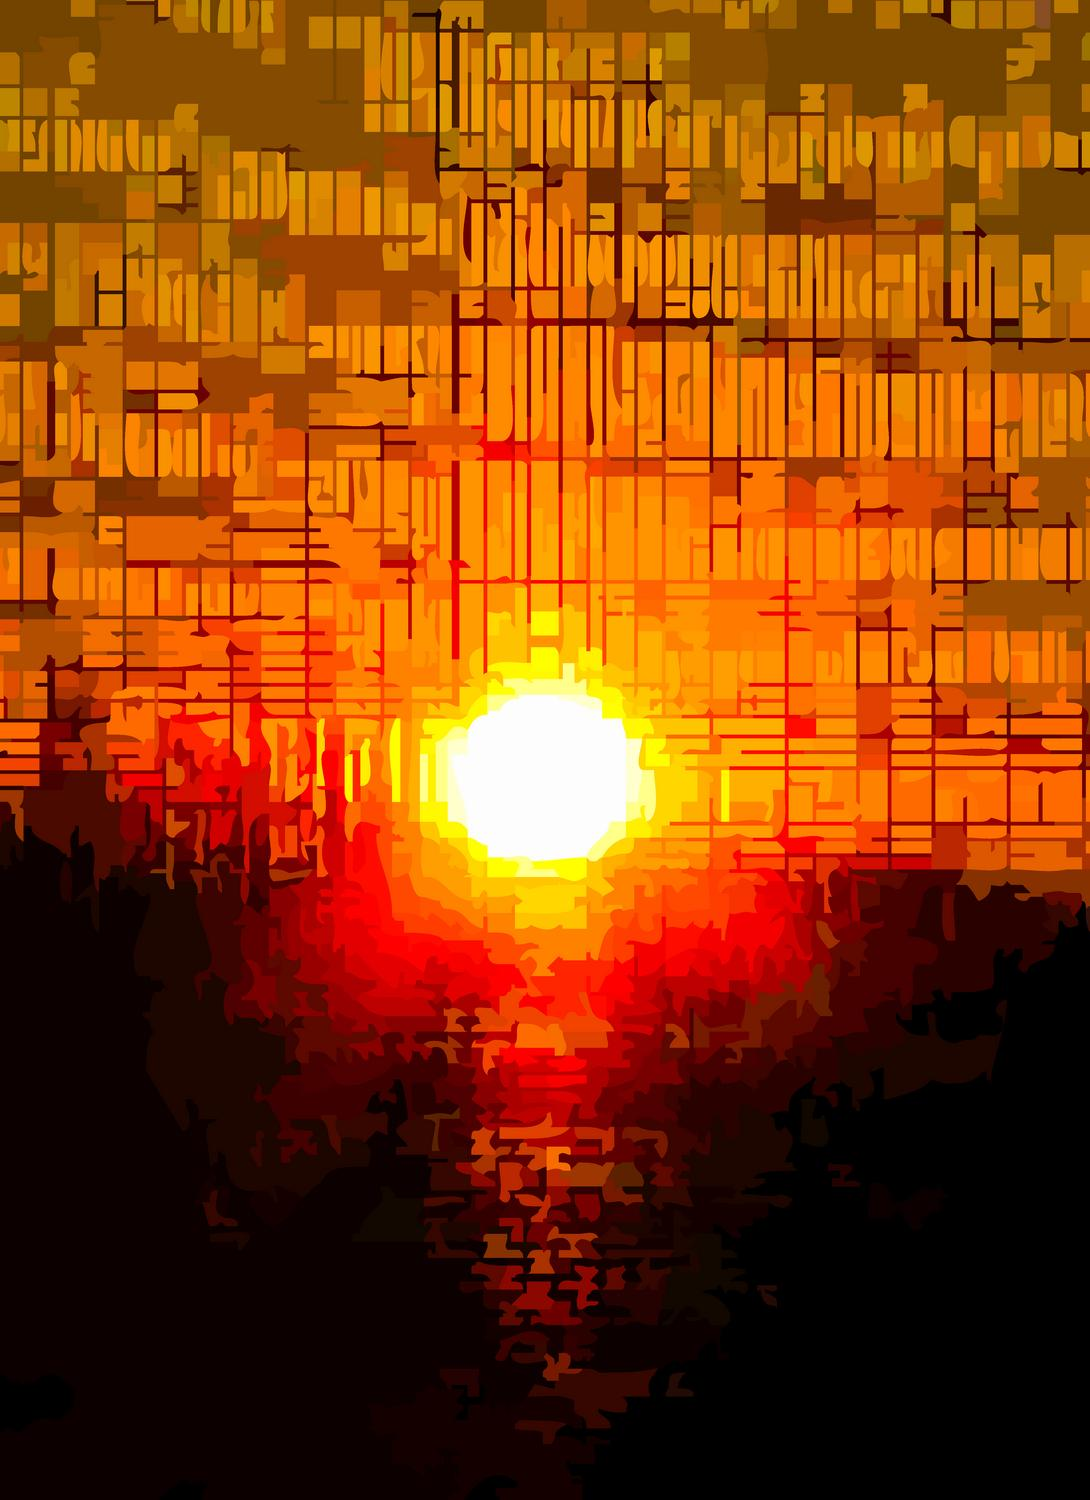 - <center>Sunset in rythmic beats and squares - Techno-Impressionist Museum - Techno-Impressionism - art - beautiful - photo photography picture - by Tony Karp